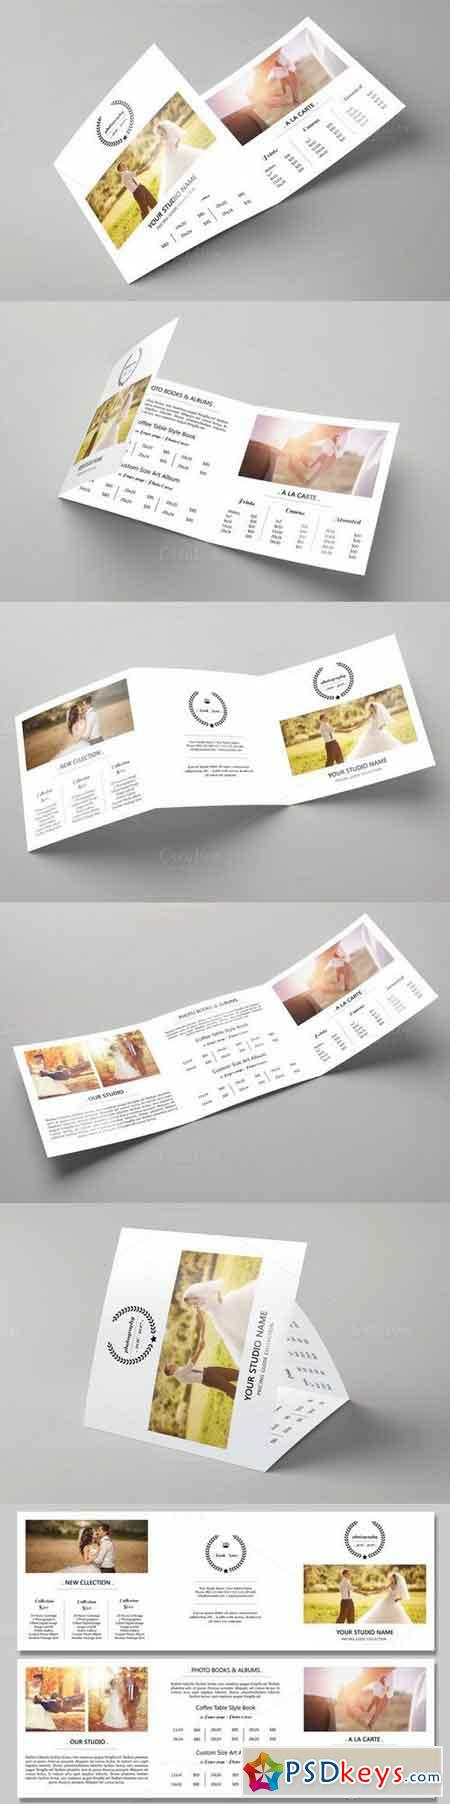 Trifold Price List Template -V511 707989